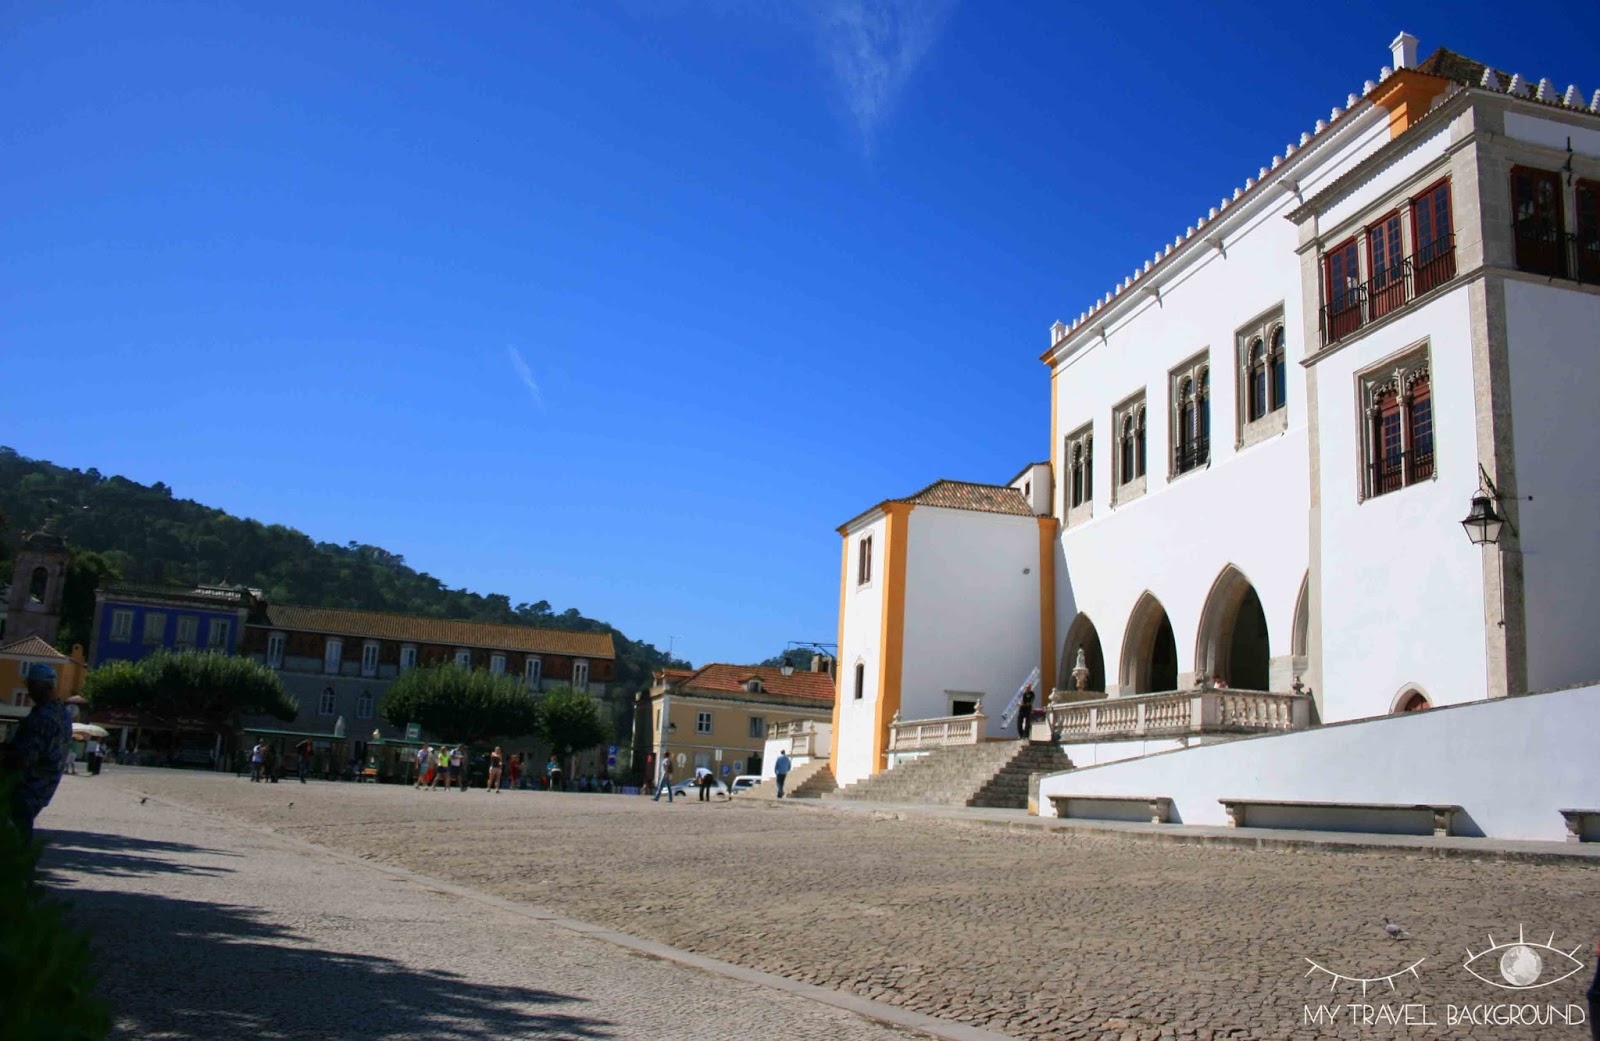 My Travel Background : Escale à Sintra, au Portugal - Le Palais National de Sintra